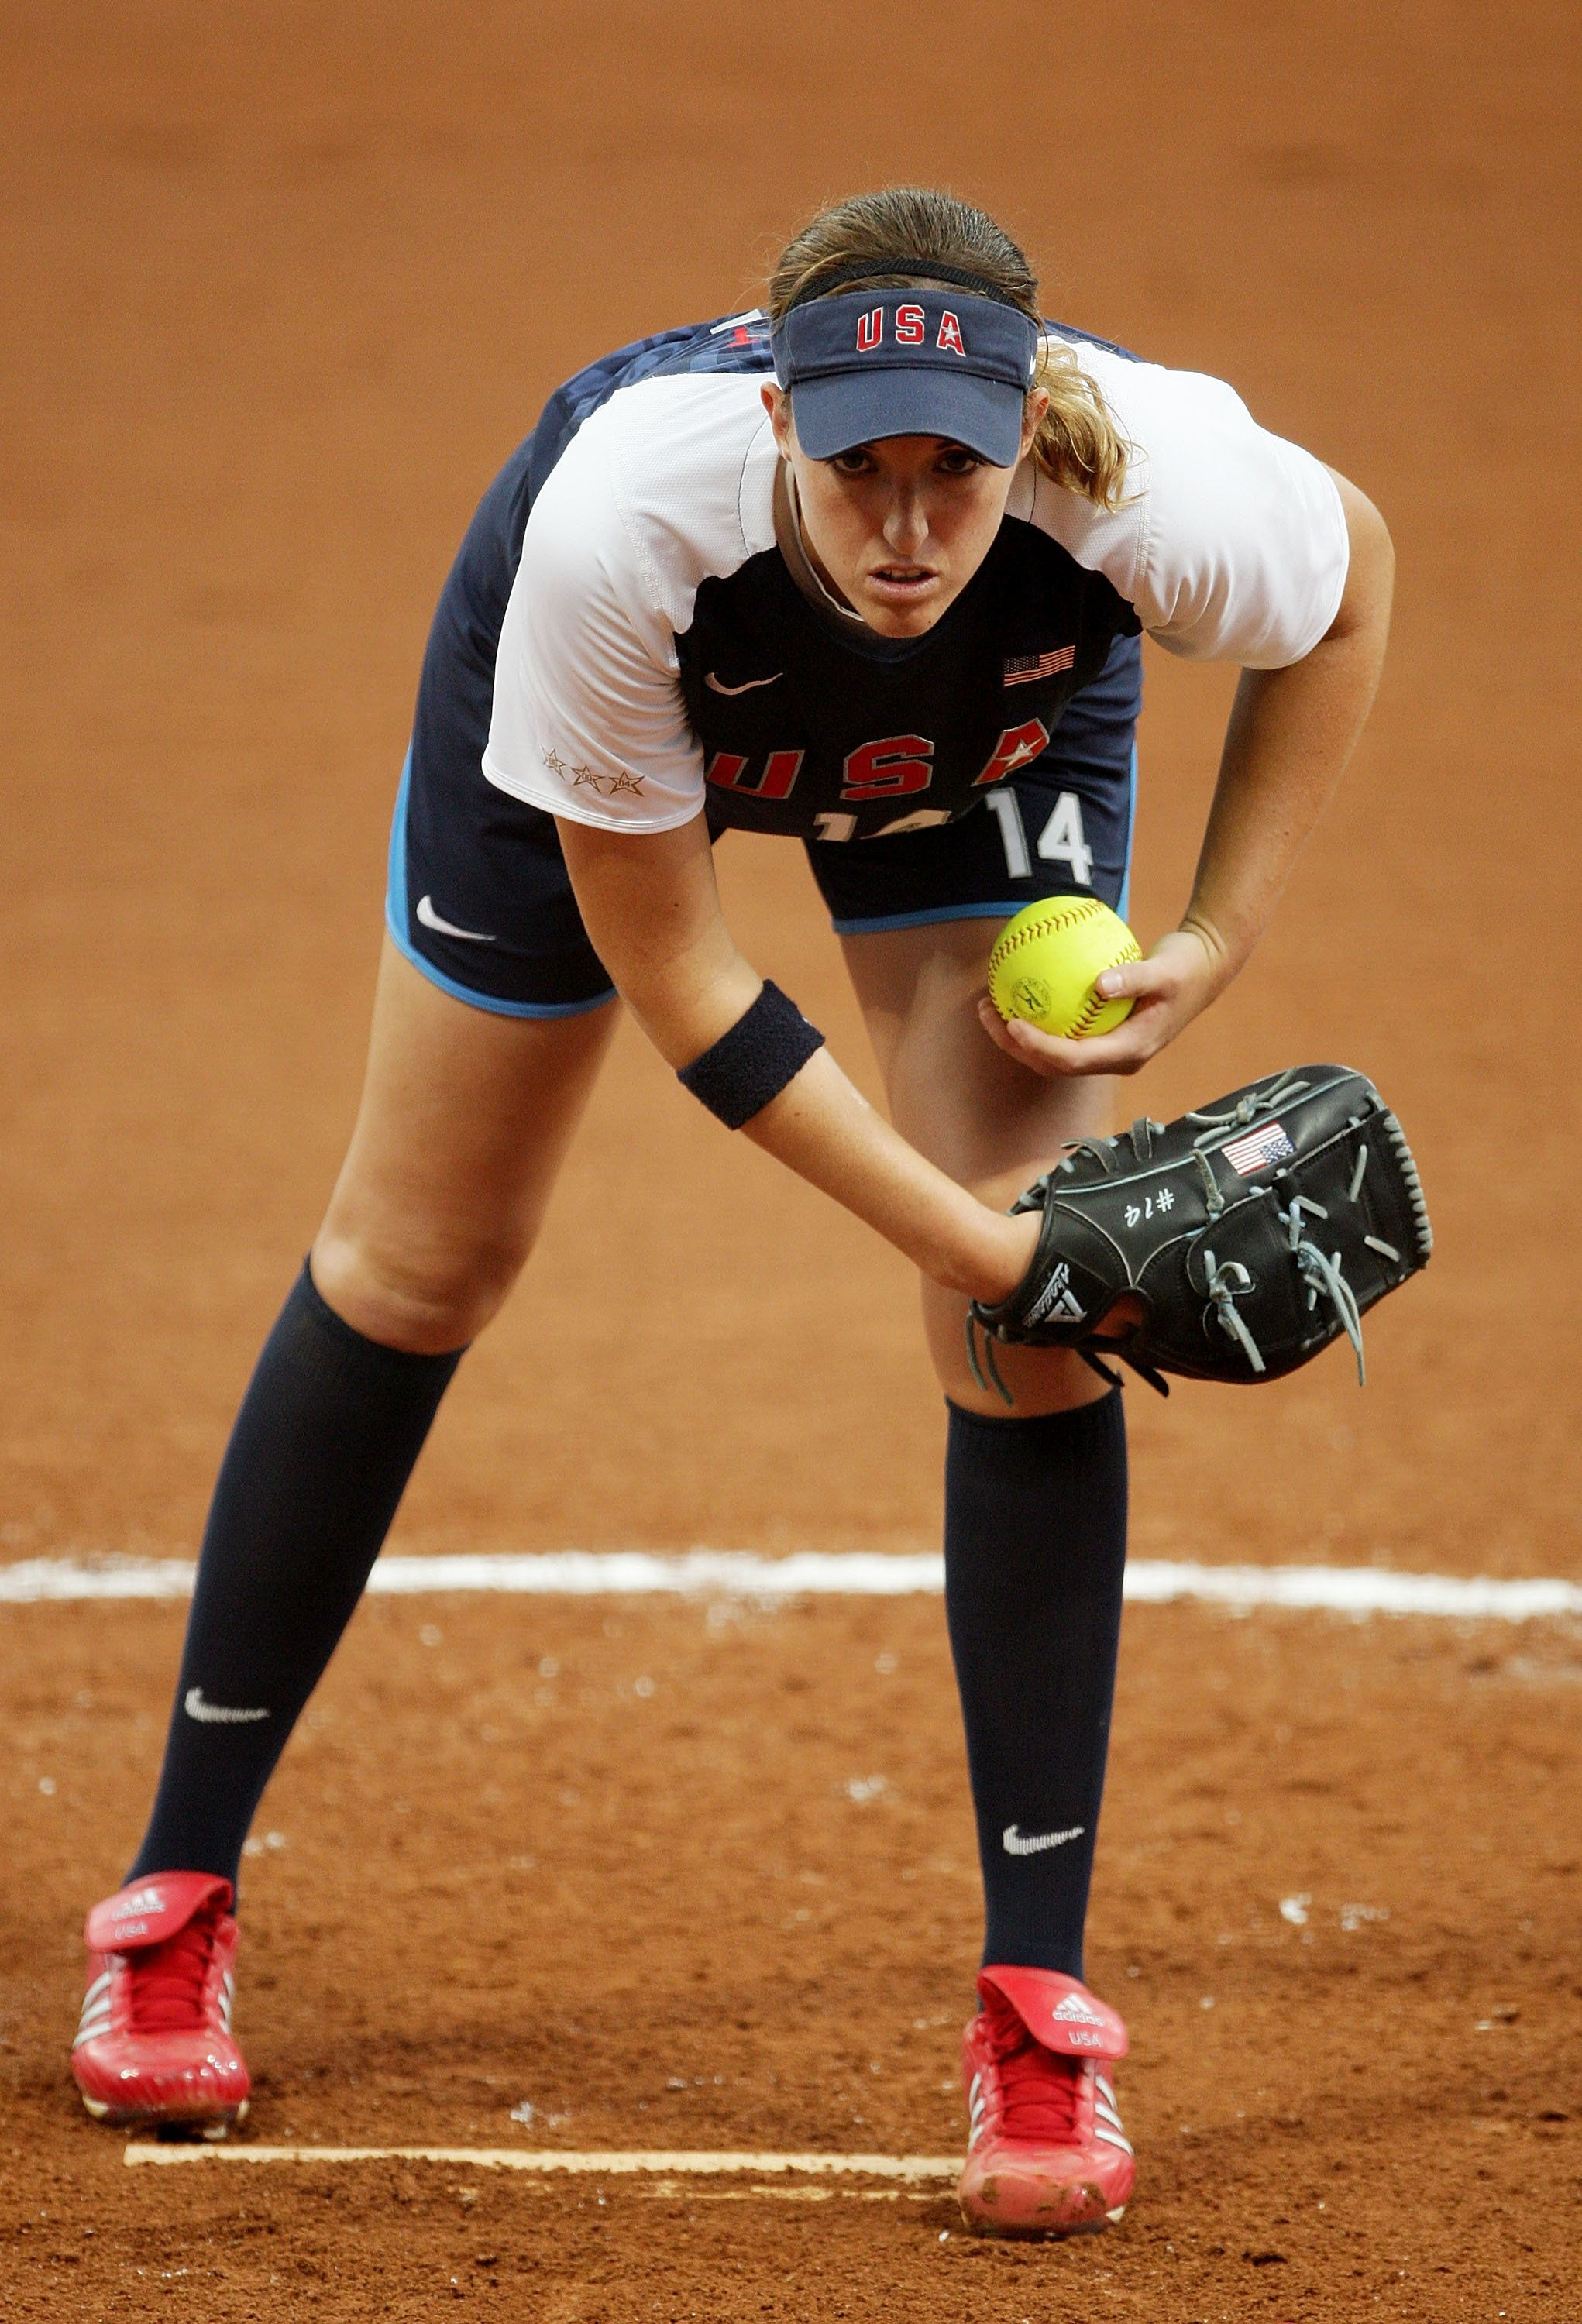 BEIJING - AUGUST 14:  Monica Abbott #14 of the United States prepares to throw a pitch against Canada during their preliminary softball game at the Fengtai Softball Field during Day 6 of the Beijing 2008 Olympic Games on August 14, 2008 in Beijing, China.  (Photo by Mark Dadswell/Getty Images)